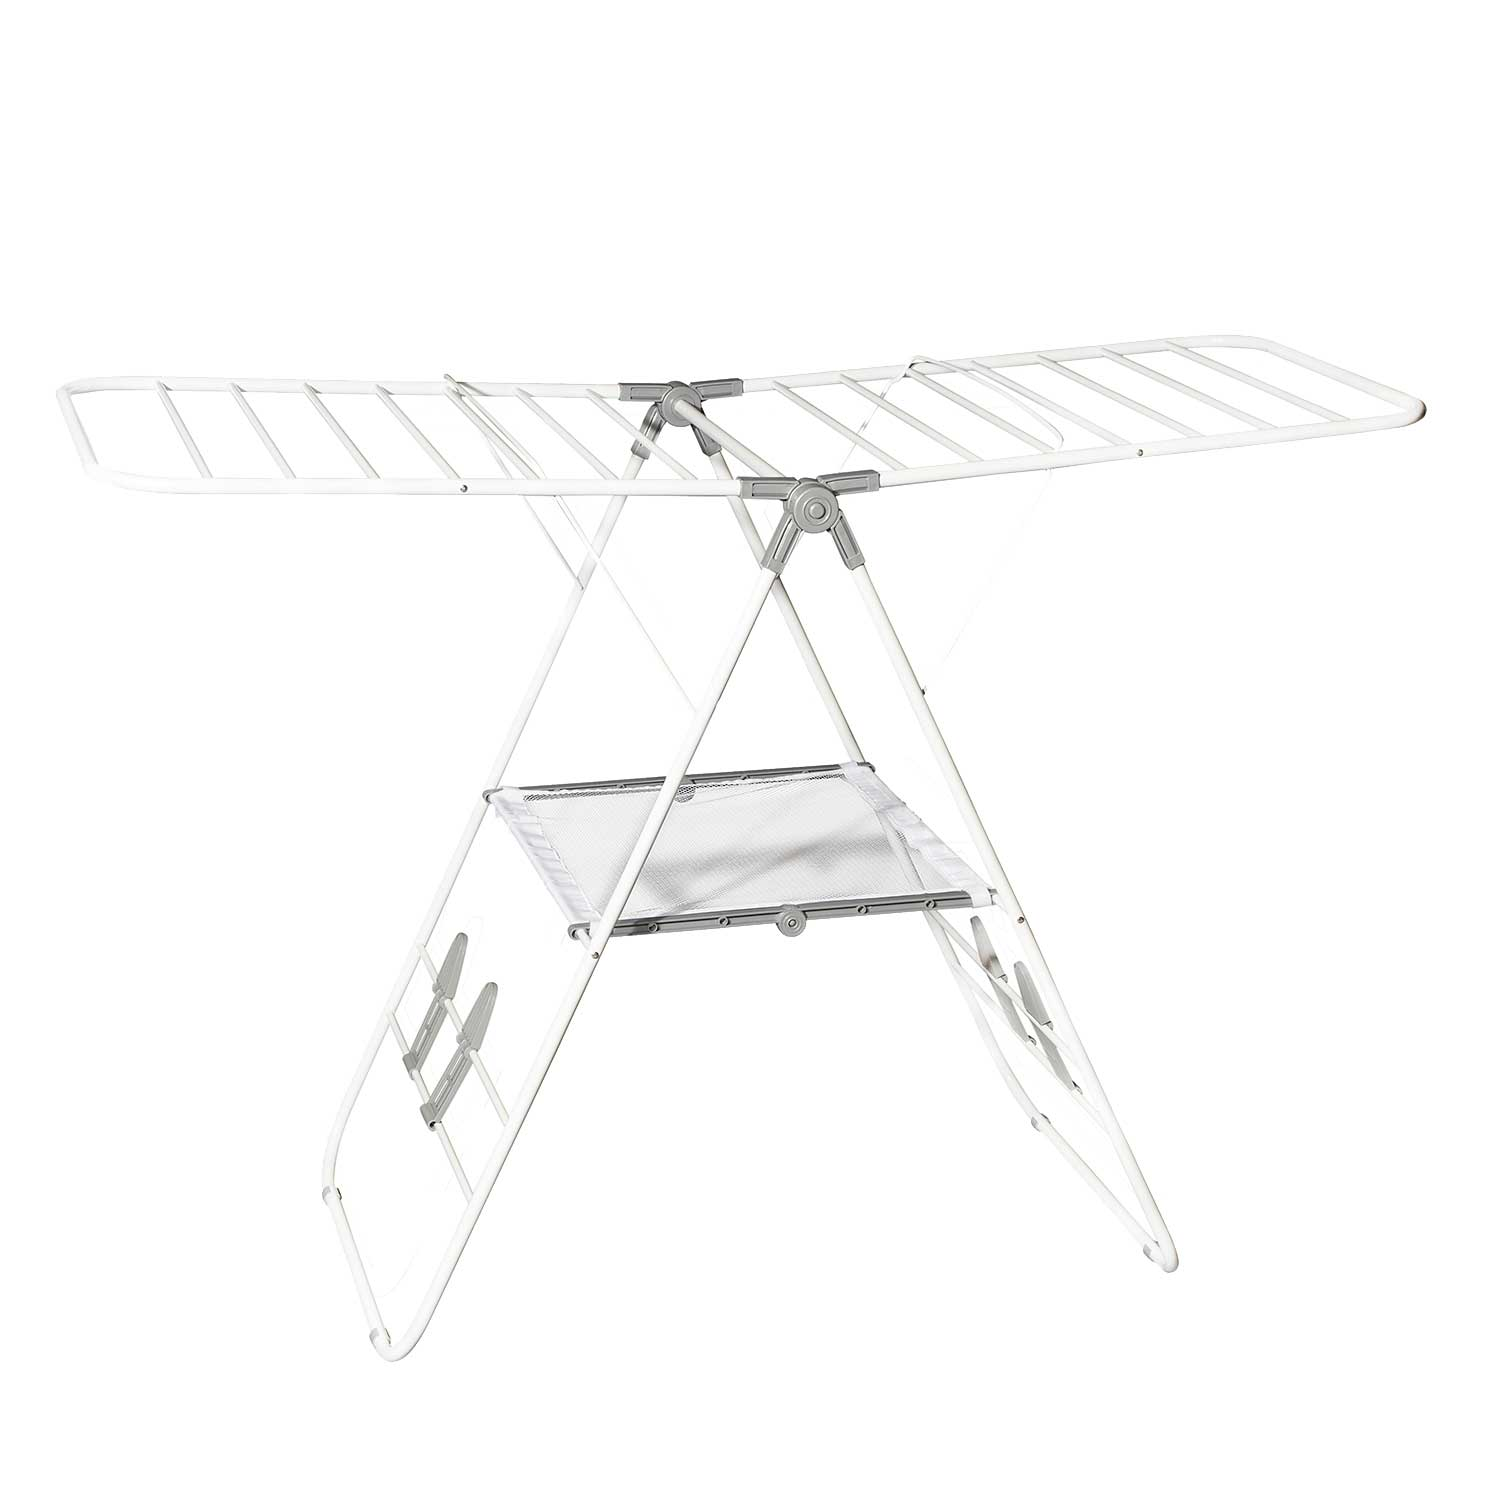 A-Frame Laundry Drying Rack (83120)